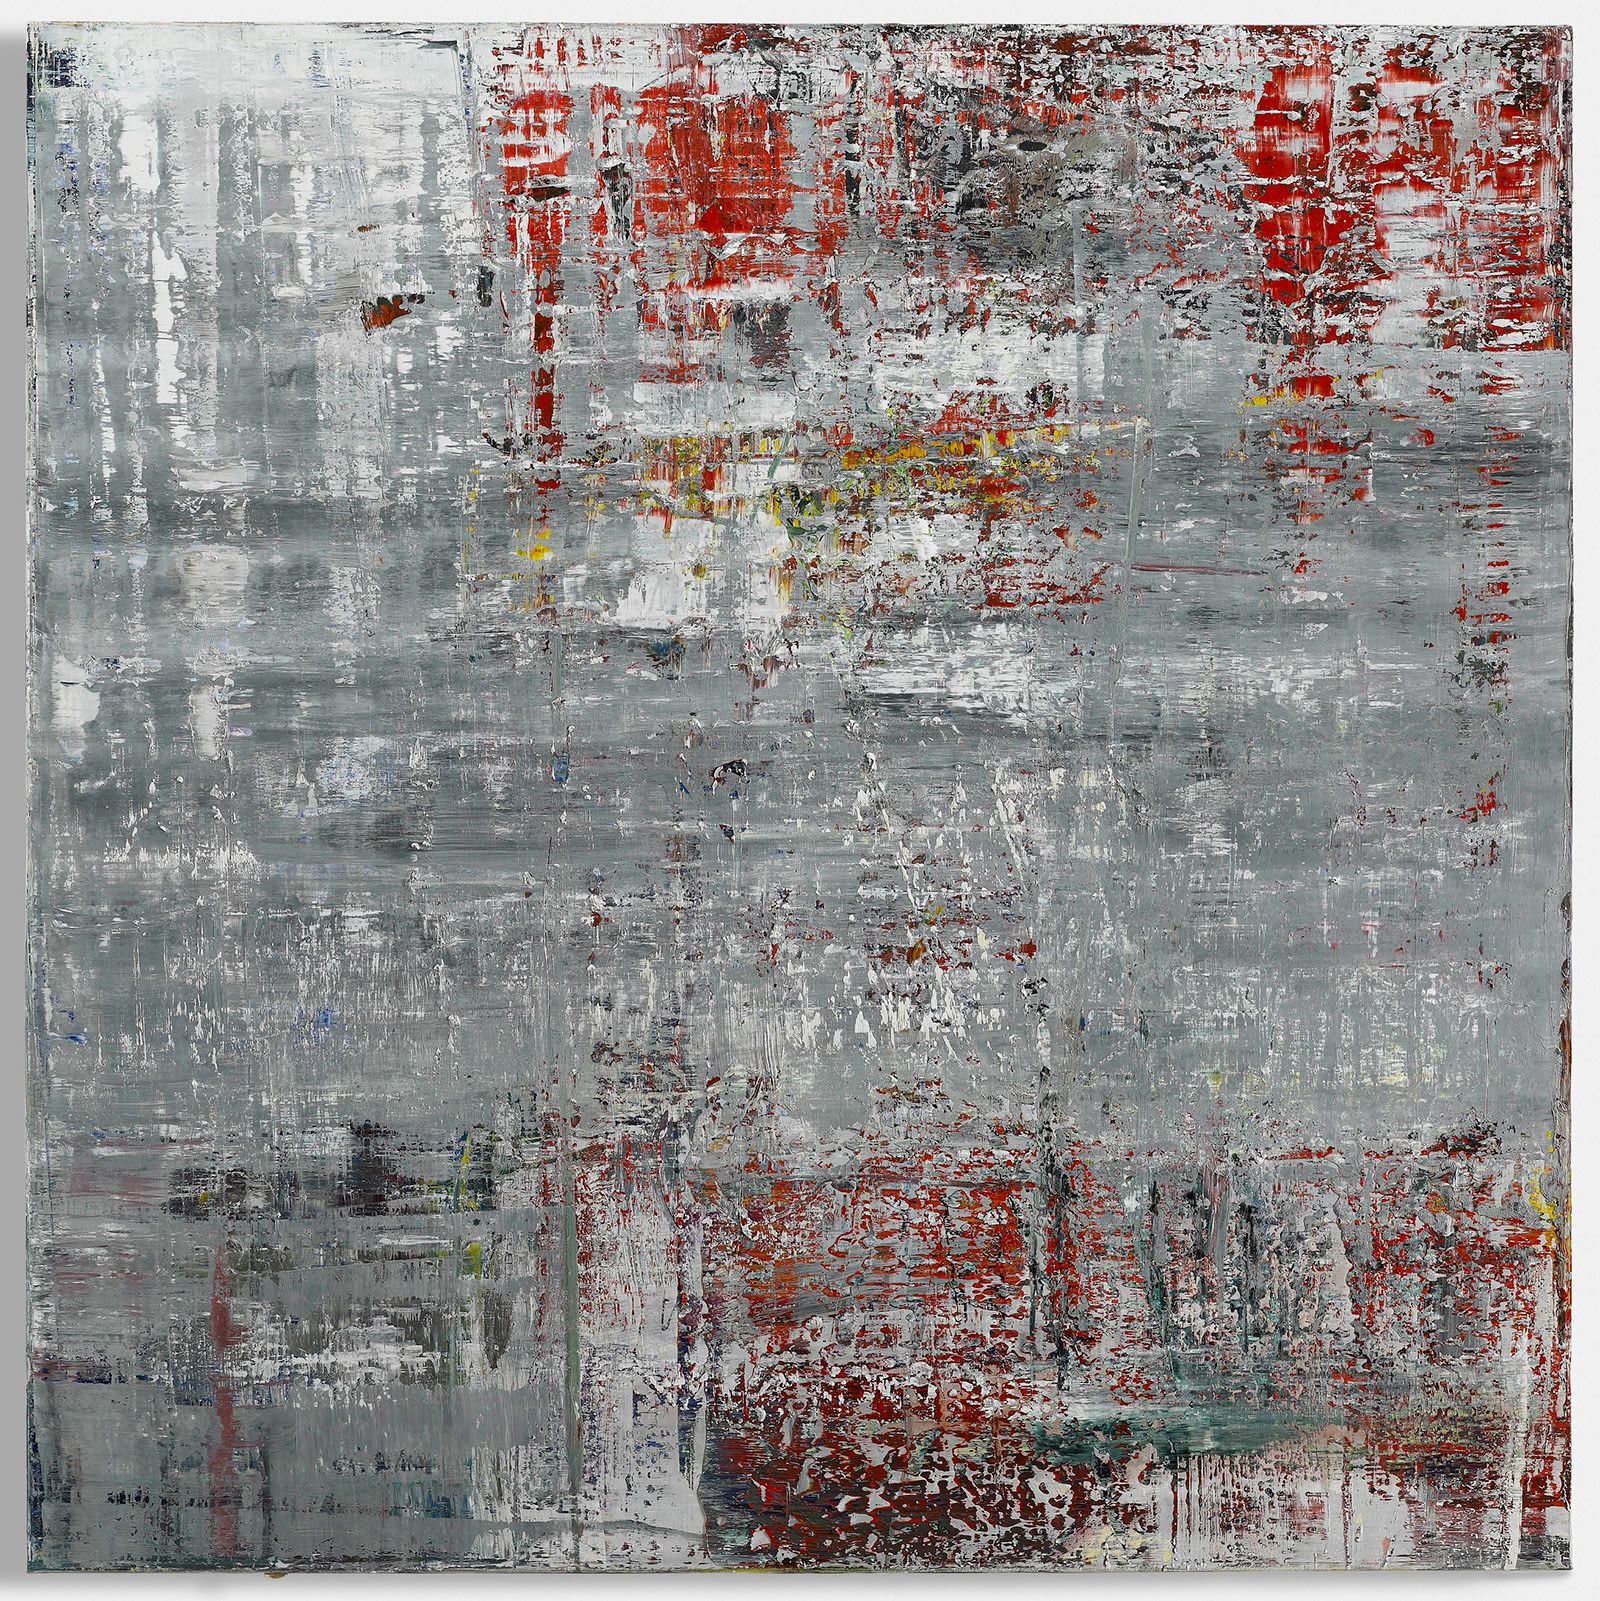 Gerhard Richter, Cage 4, 2006. Oil on canvas, 114 1/4 x 114 1/4 inches